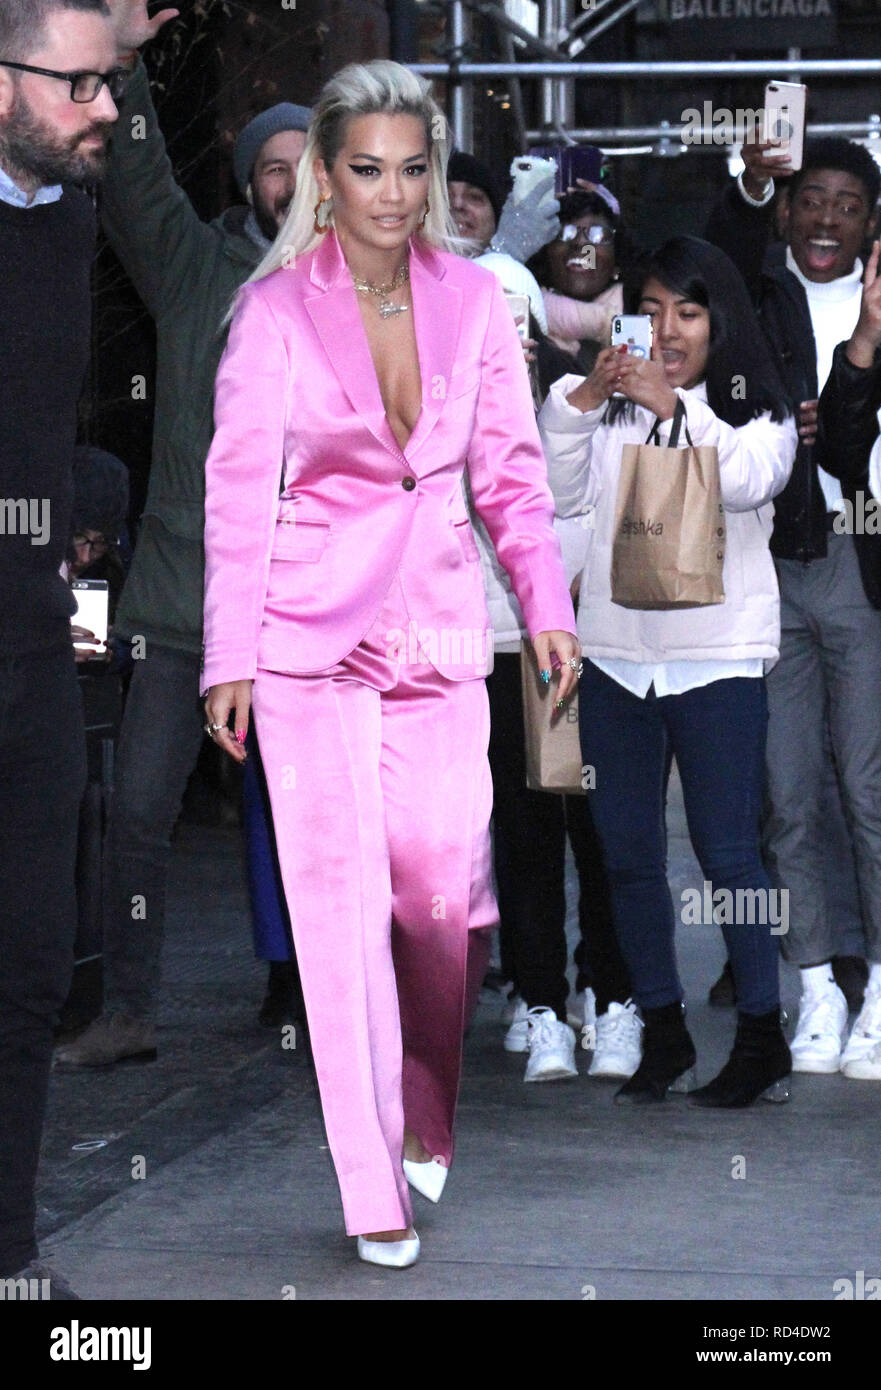 New York, NY, USA. 16th Jan, 2019. Rita Ora seen leaving for The Tonight Show Starring Jimmy Fallon in New York City on January 16, 2019. Credit: Rw/Media Punch/Alamy Live News - Stock Image